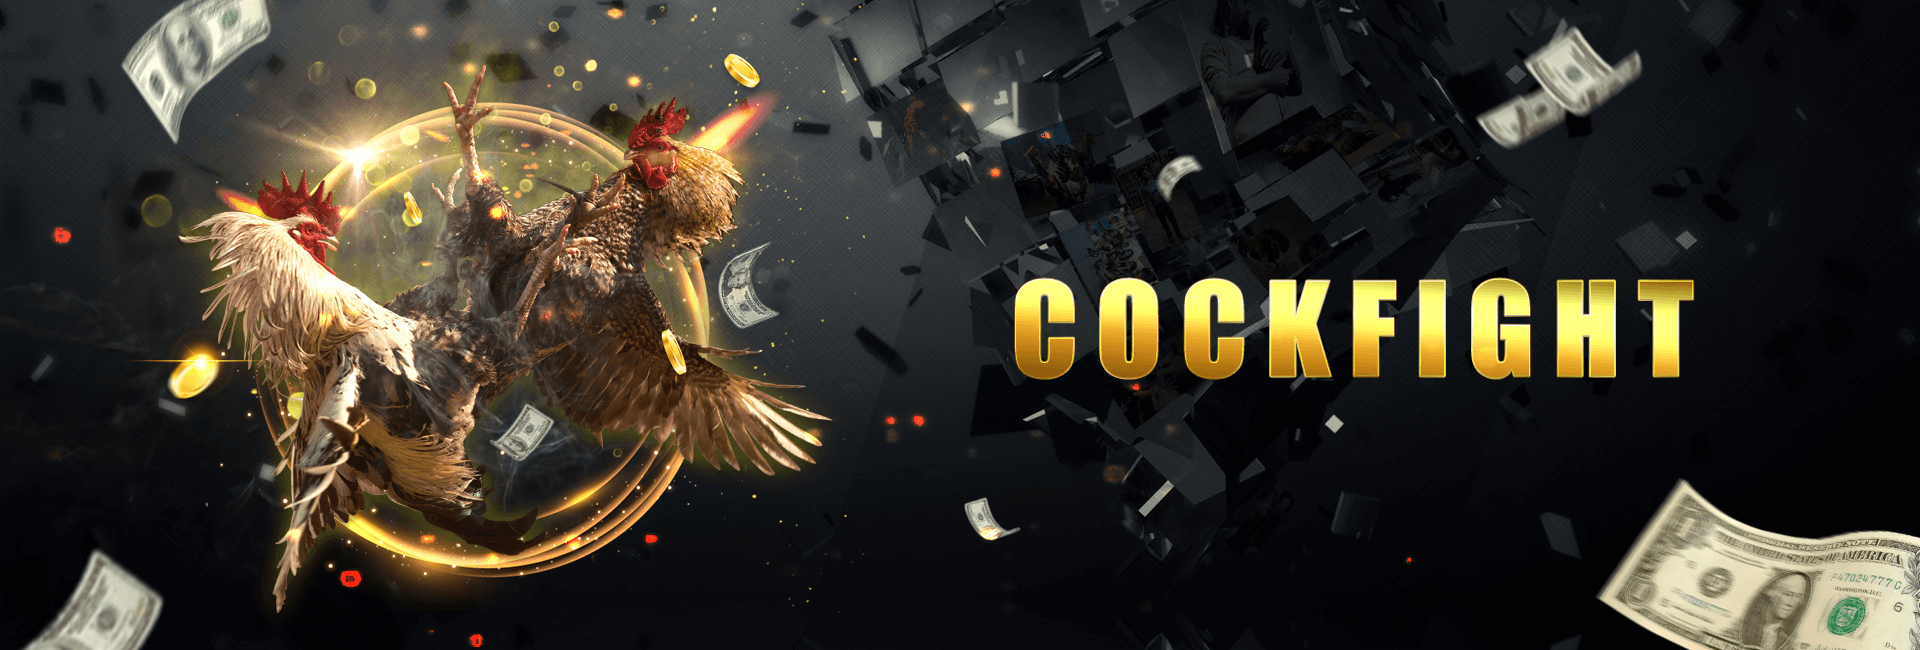 Cockfight Page